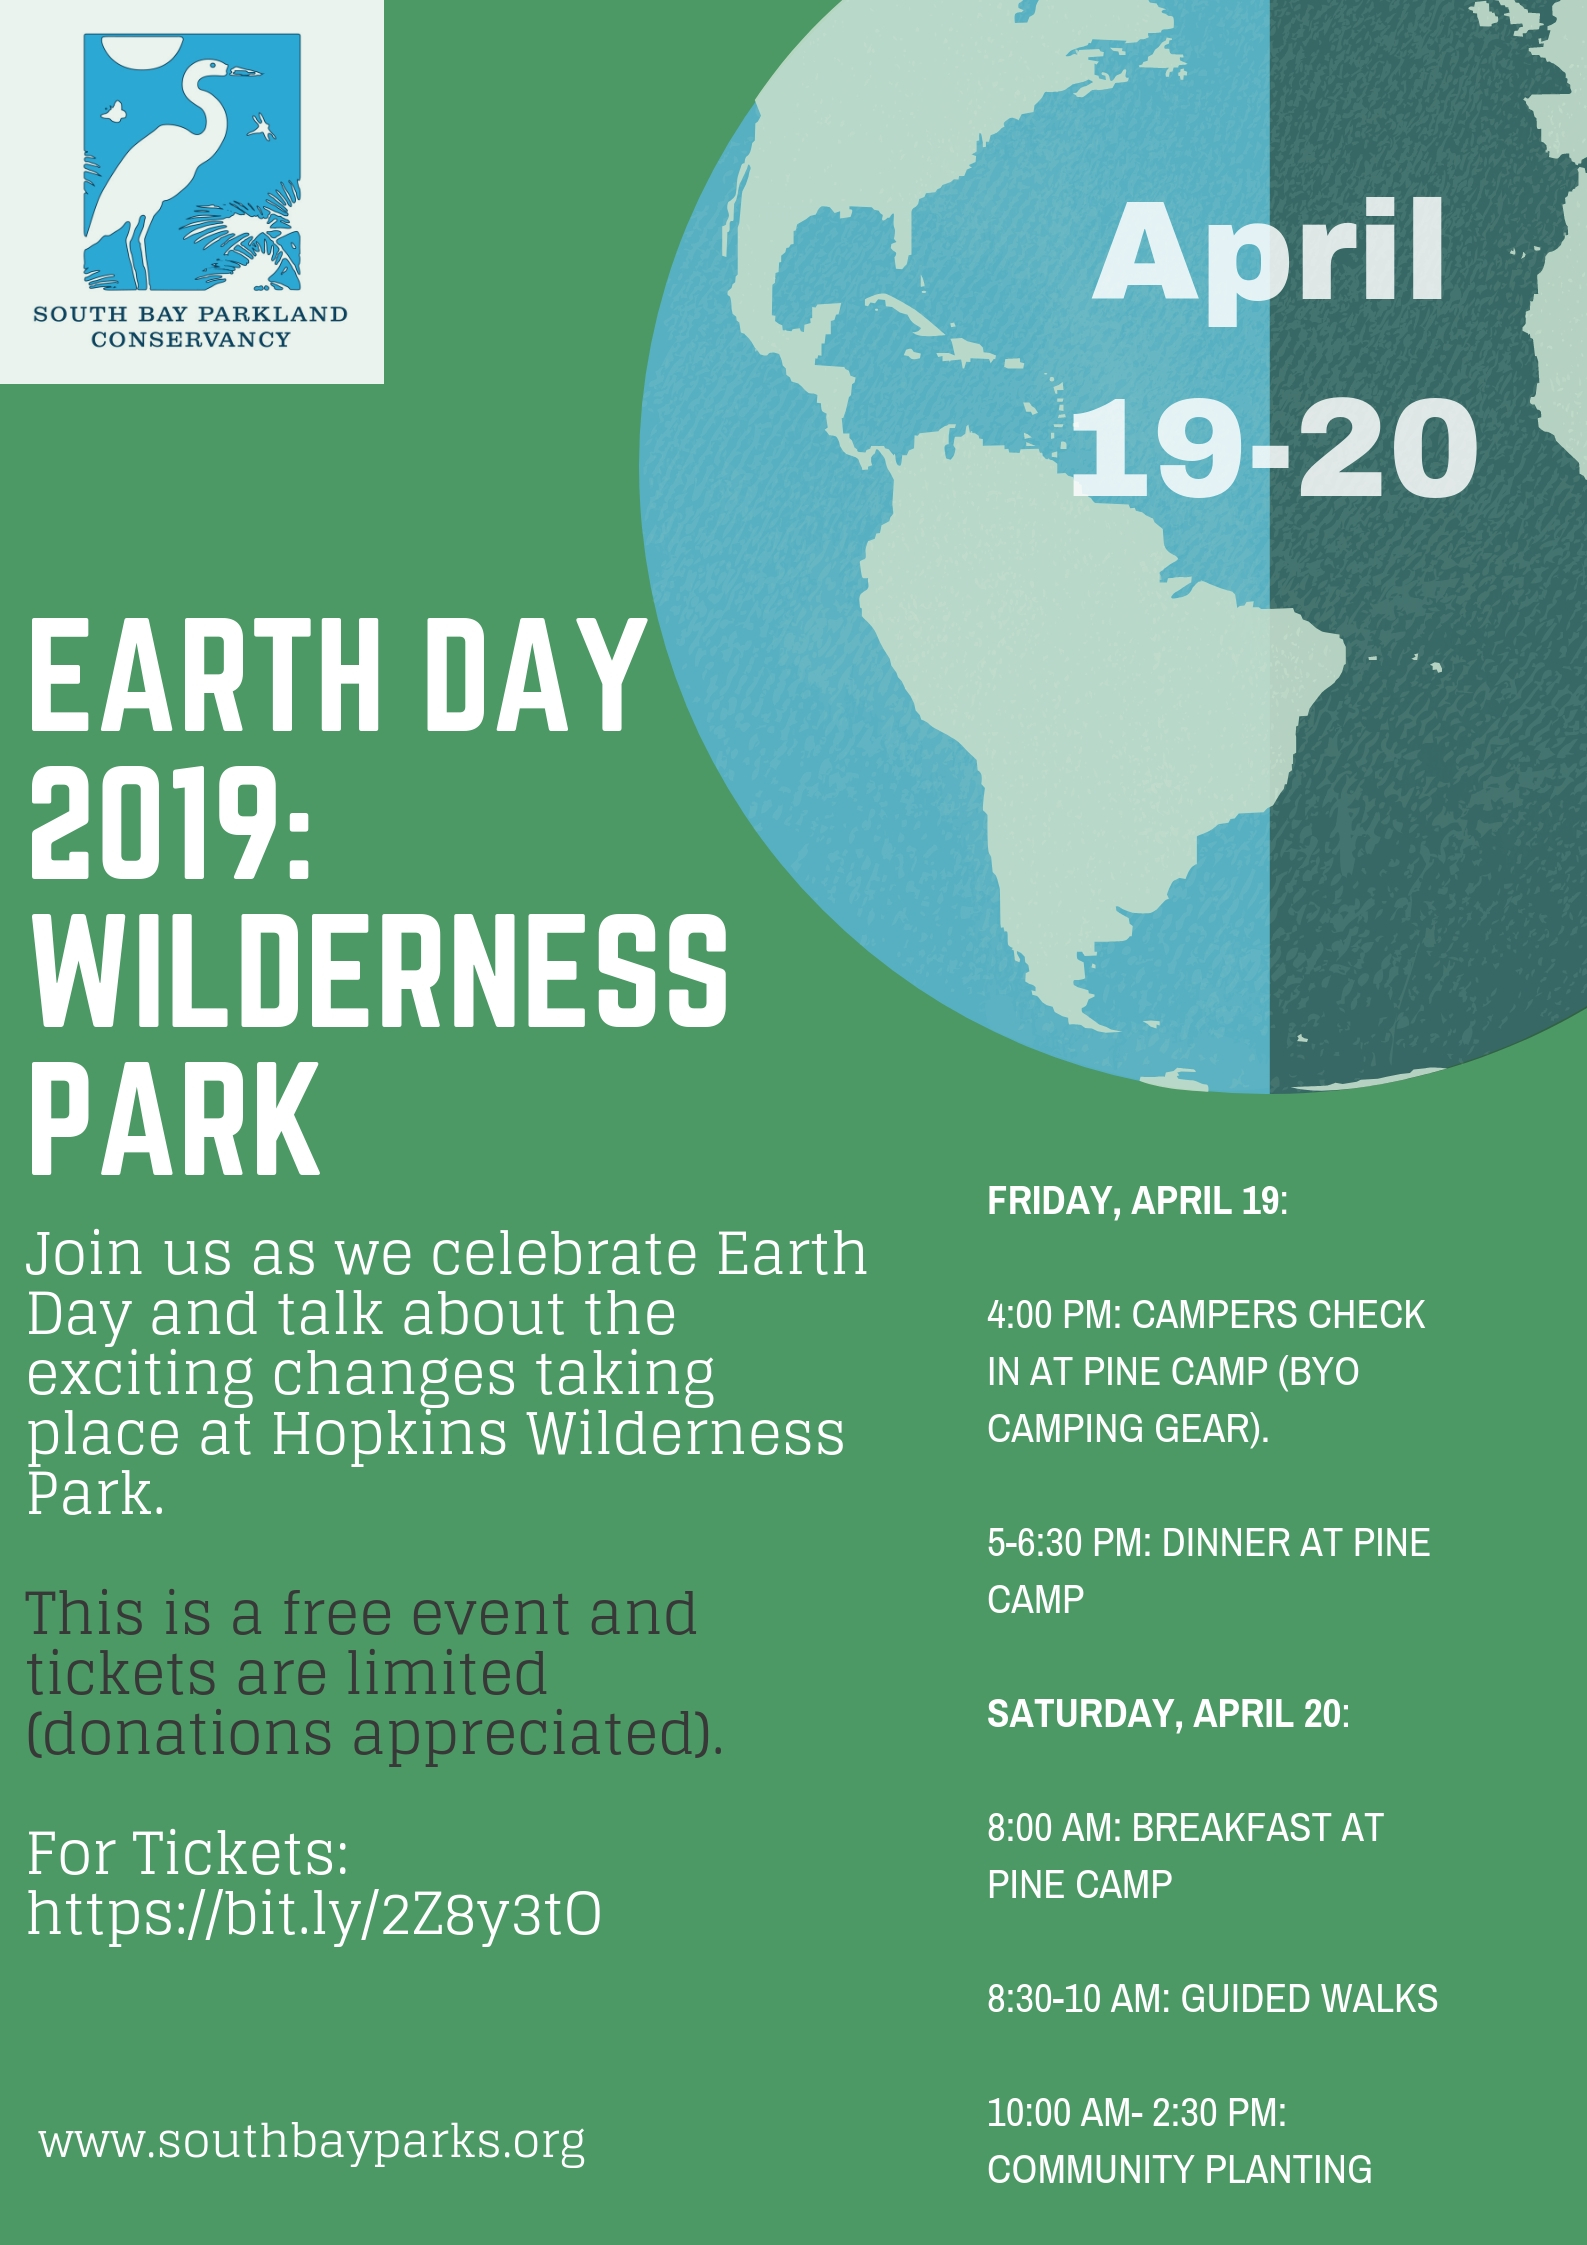 Earth Day 2019 Wilderness Park.jpg